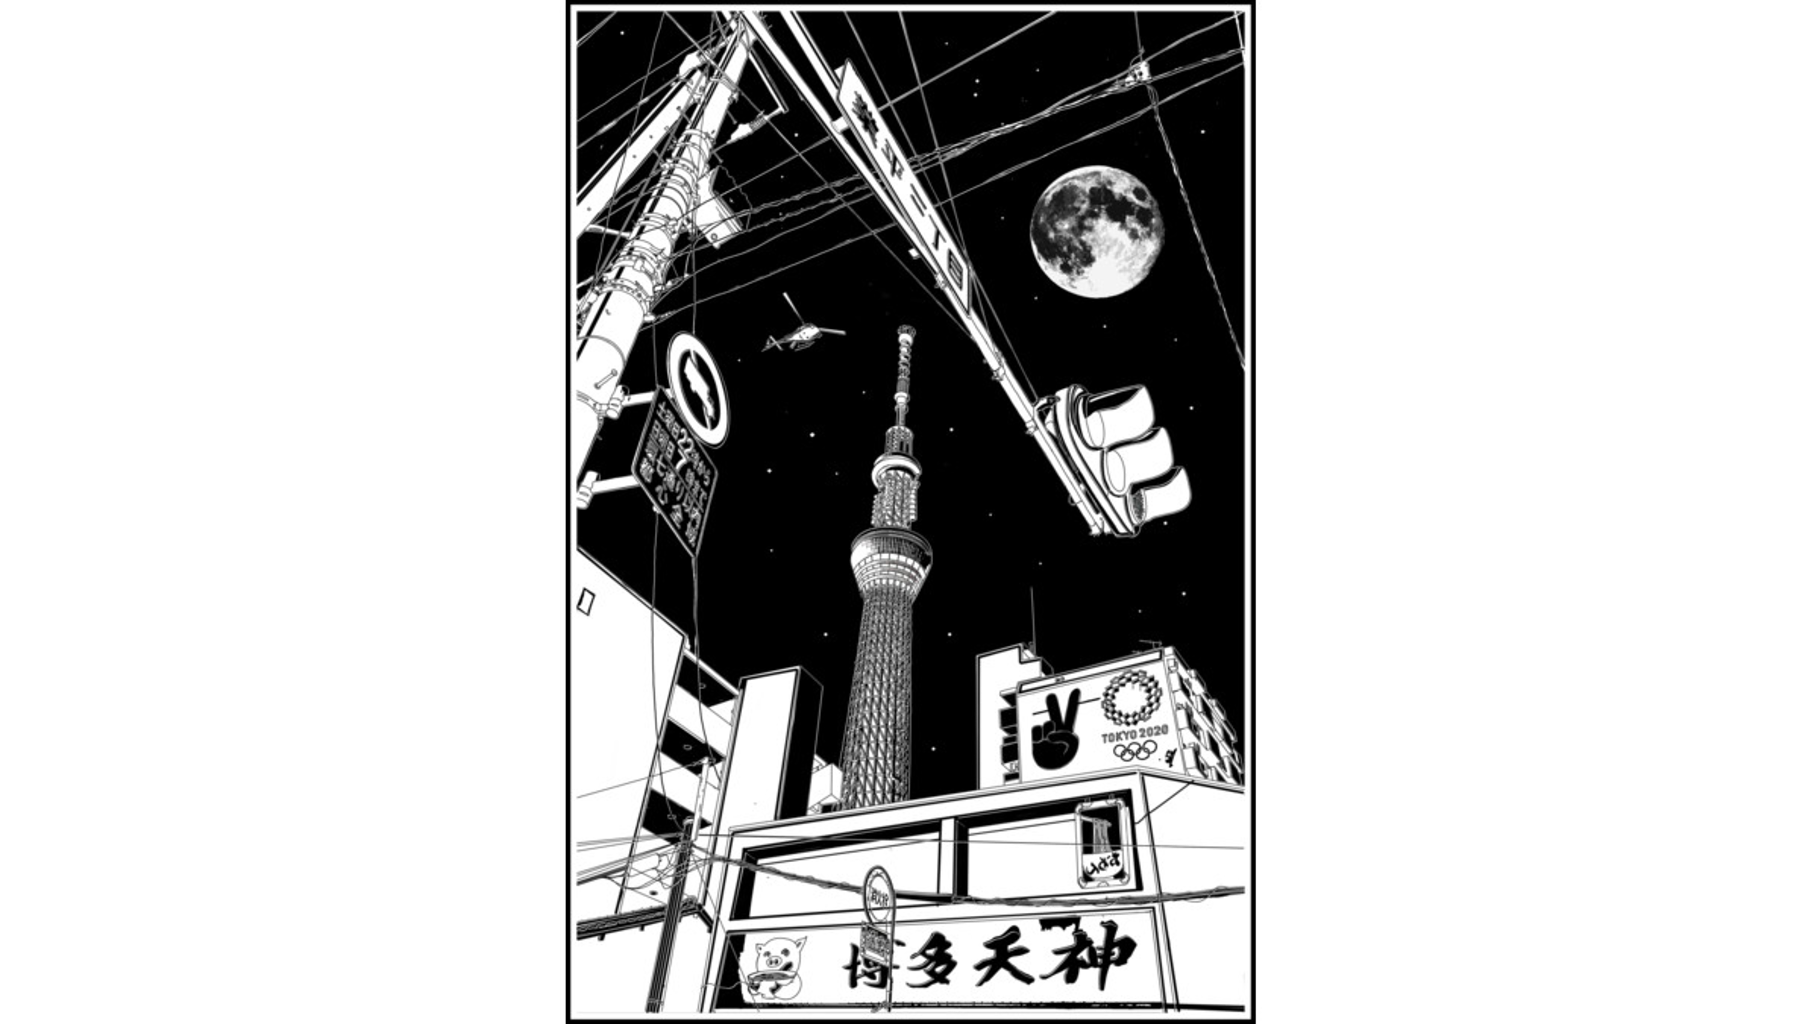 Design by Humans: Night in Tokyo 2020